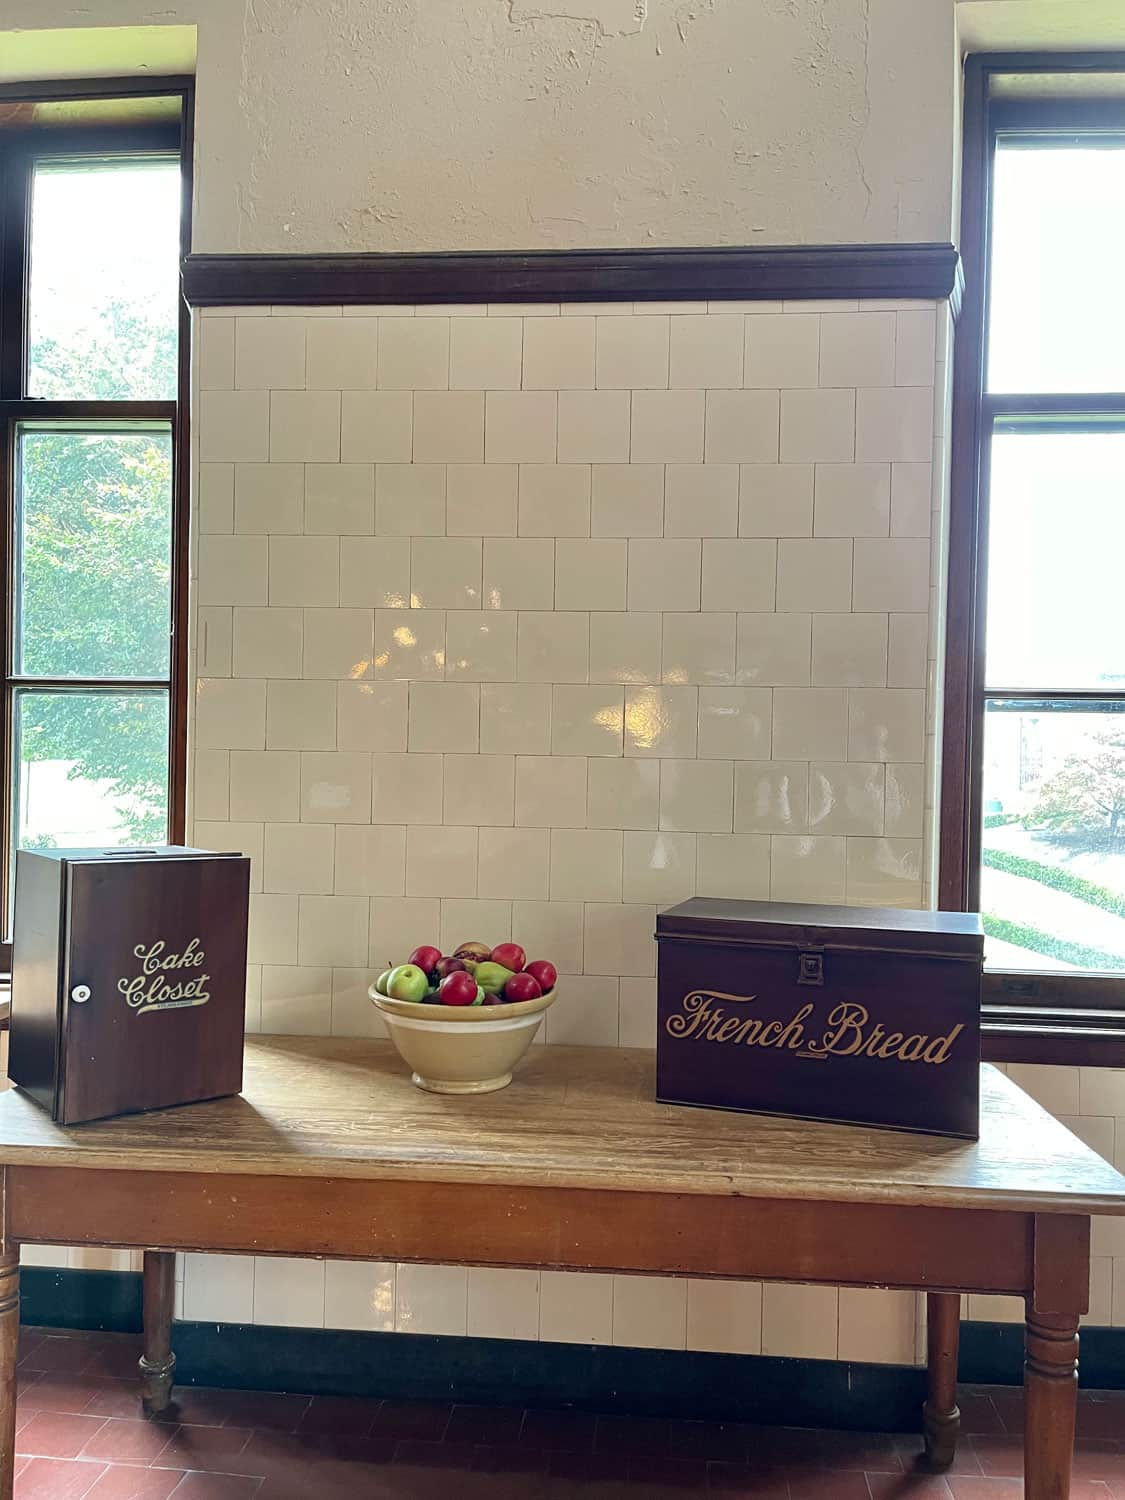 Palatial Living At The Breakers tiled kitchen